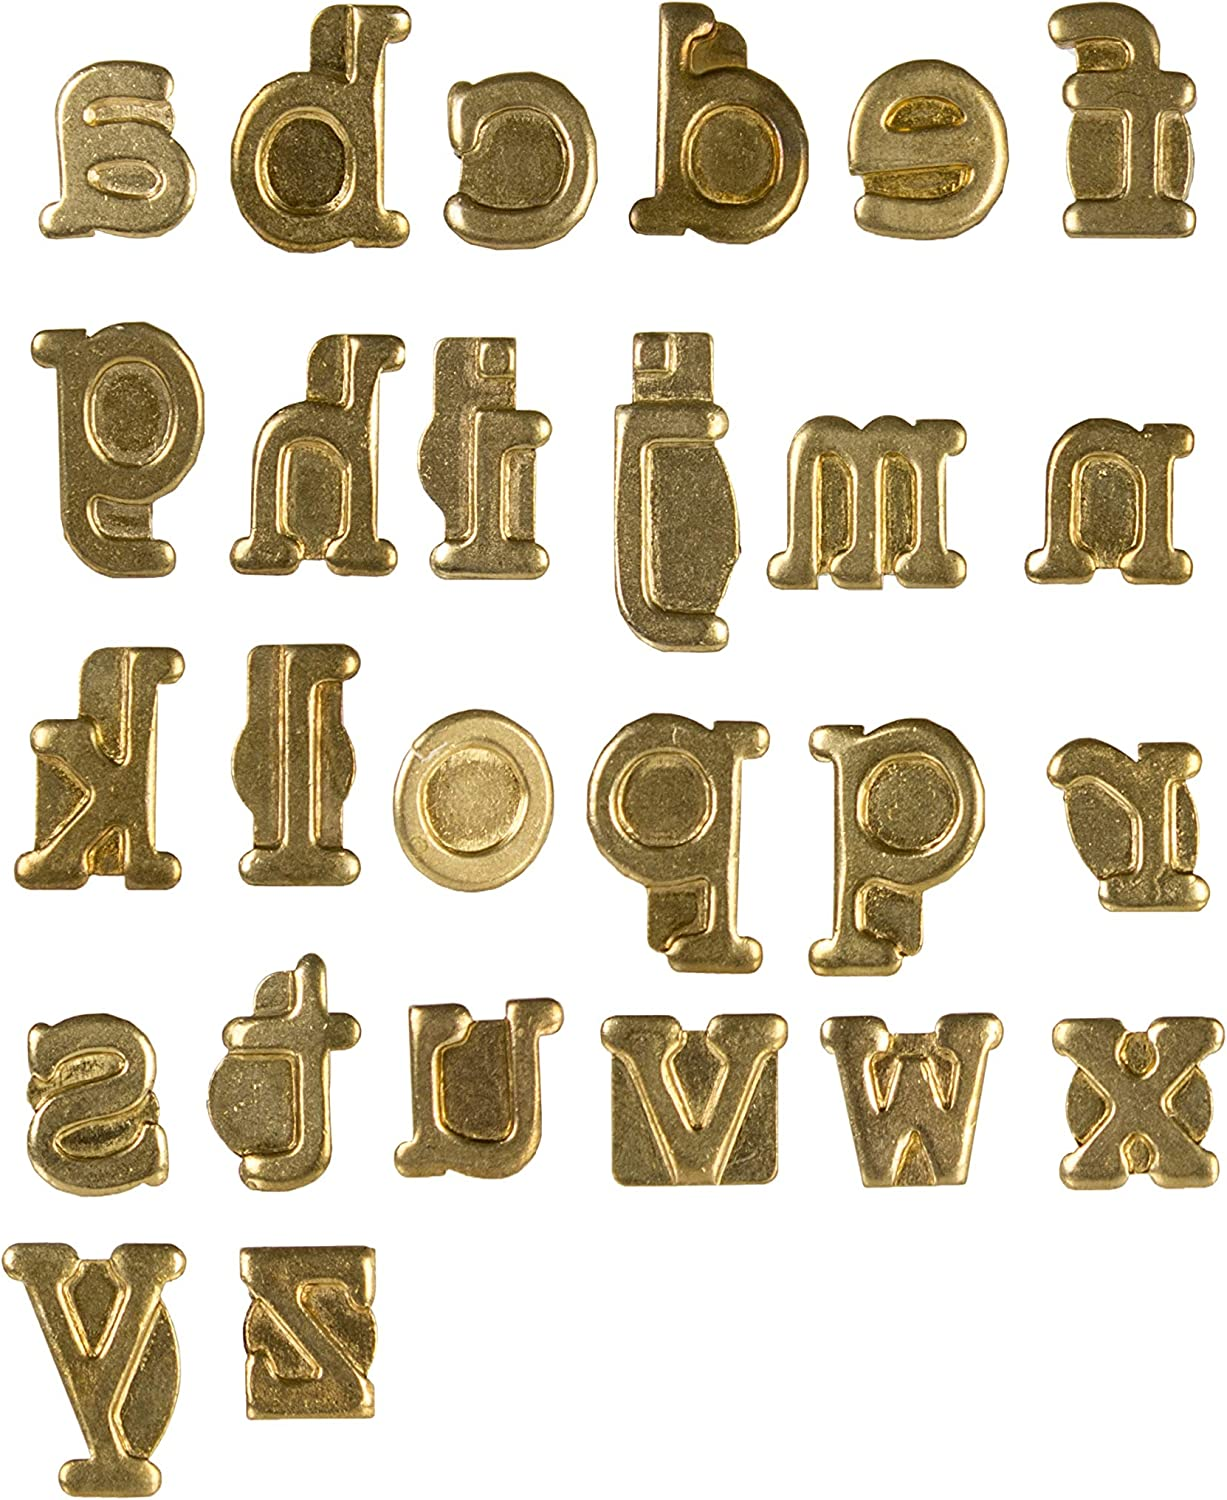 Multicolour Walnut Hollow Hotstamps Lowercase Alphabet Branding and Personalization Set for Wood and Other Surfaces 5x8x0.5 cm Acrylic